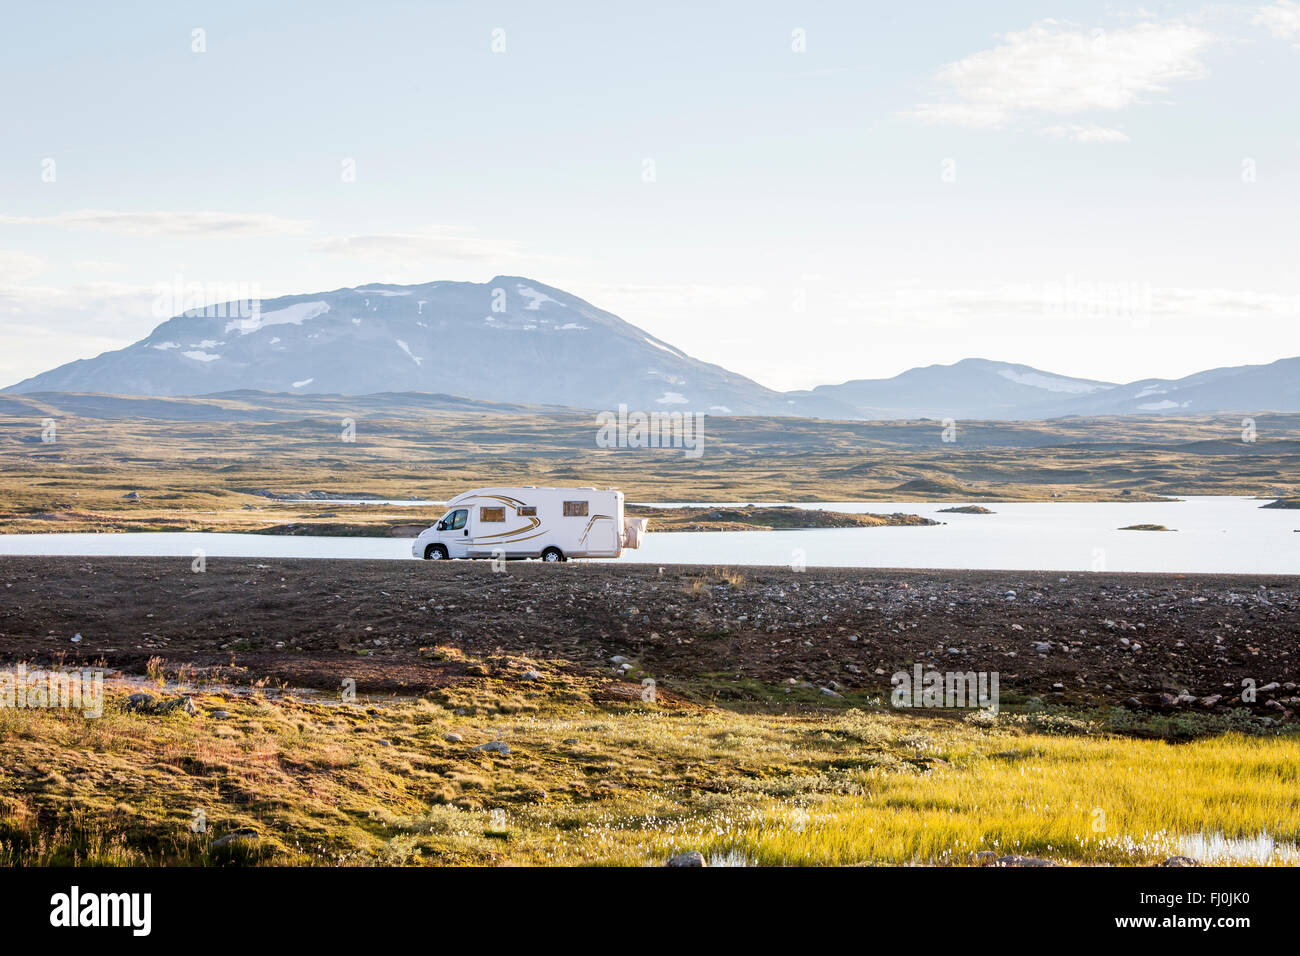 Picture of a motor home, RV, in the wilderness of Swedish Lapland. - Stock Image